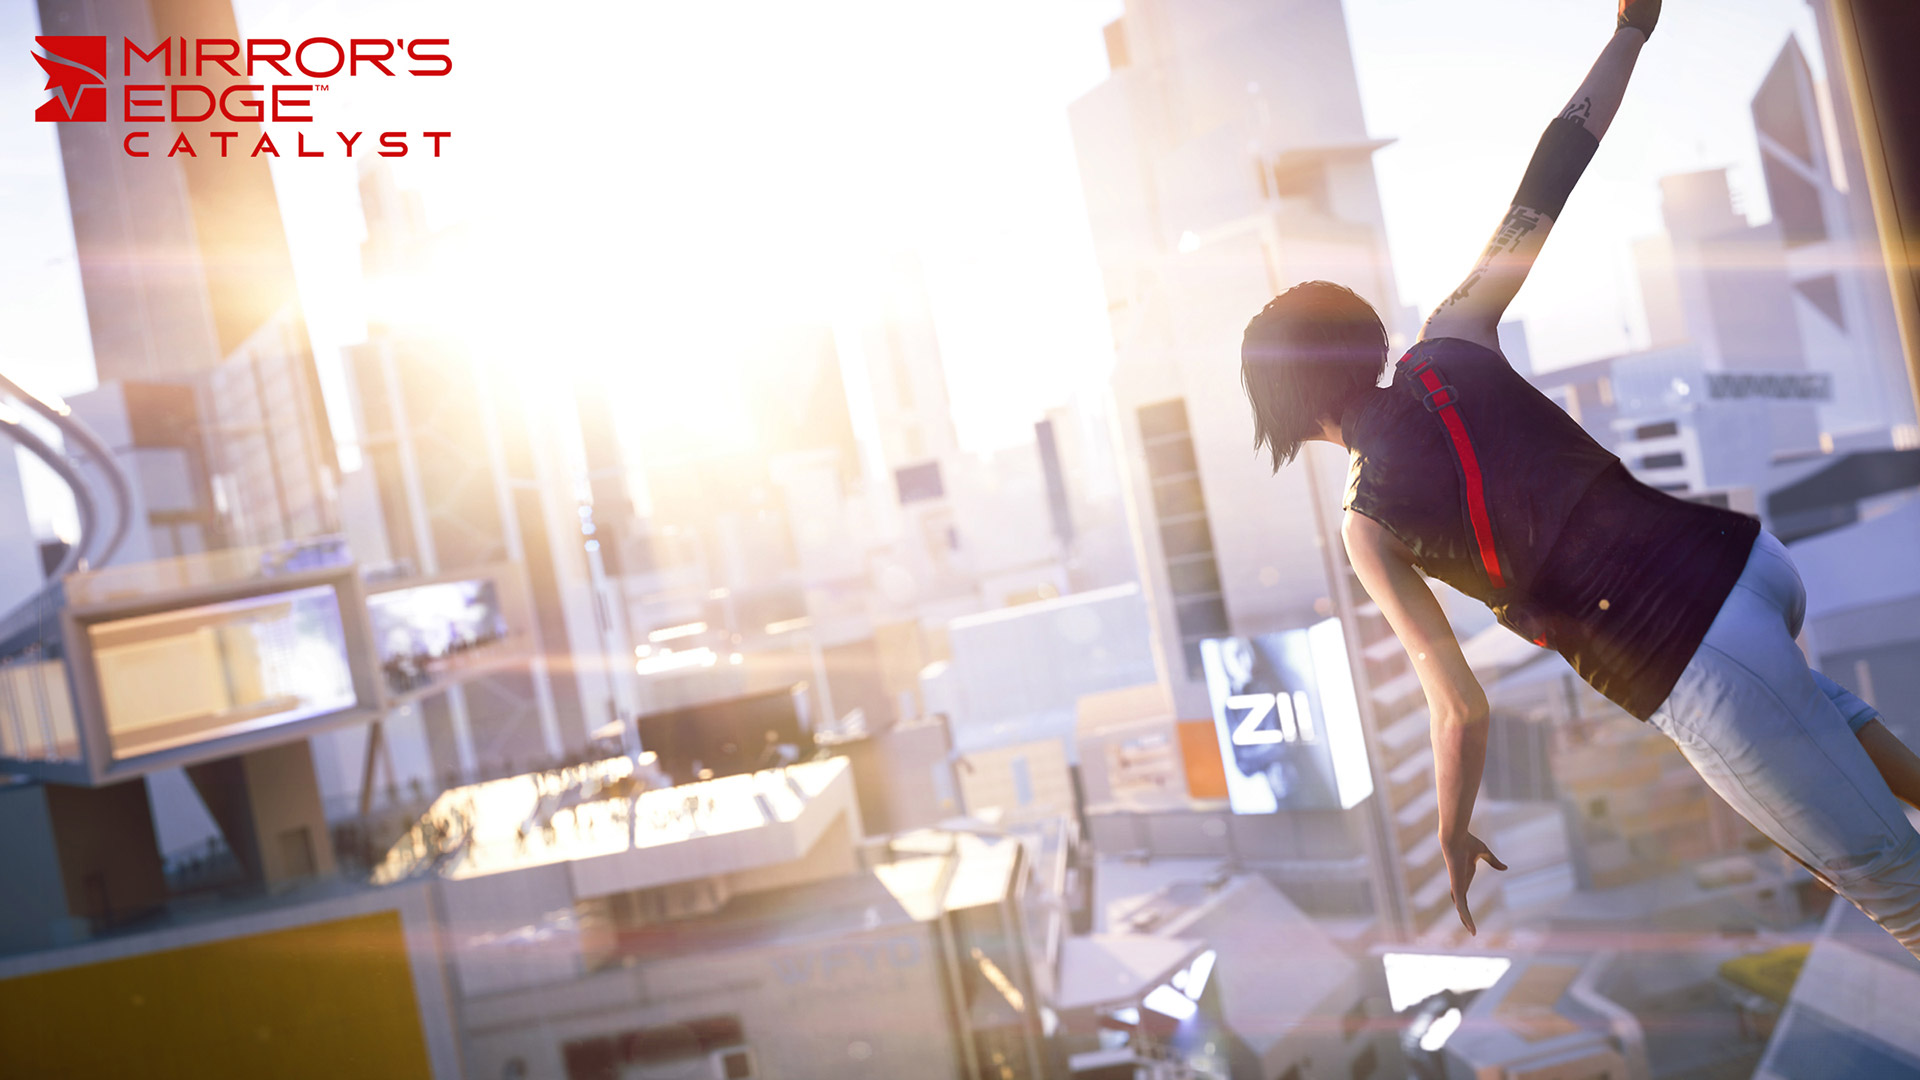 """Mirror's Edge Catalyst"" Delayed - Pushed Back for Quality Insurance"